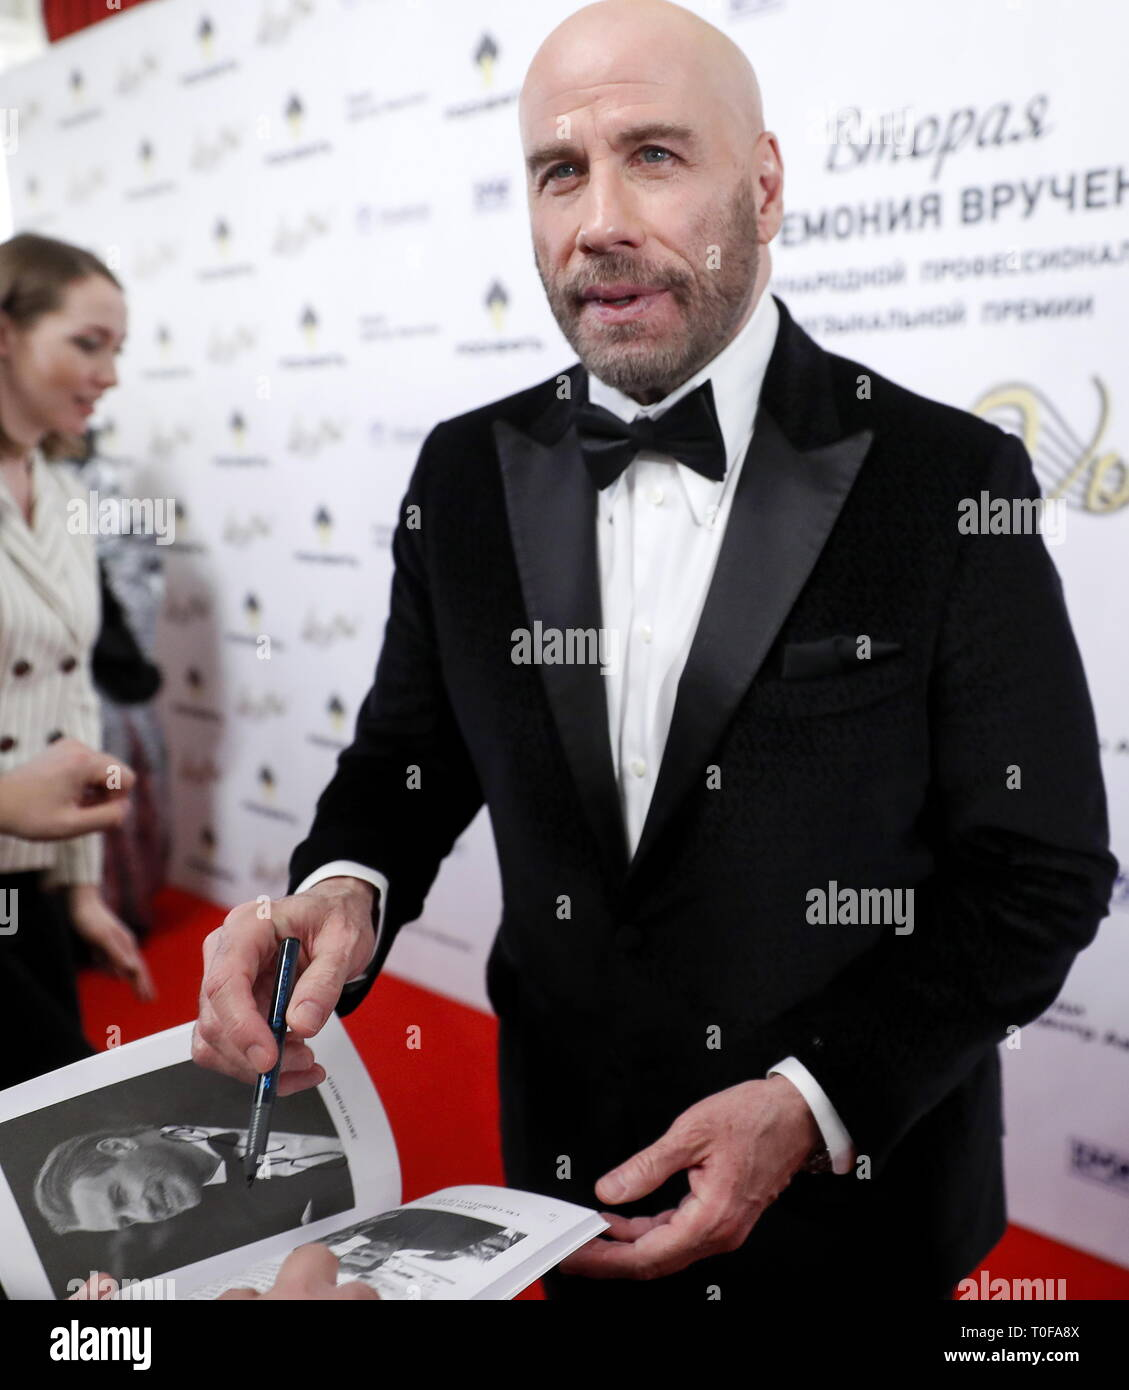 Moscow, Russia. 19th Mar, 2019. MOSCOW, RUSSIA - MARCH 19, 2019: American actor John Travolta ahead of a ceremony to present BraVo international classical music awards at the Bolshoi Theatre. Mikhail Japaridze/TASS Credit: ITAR-TASS News Agency/Alamy Live News - Stock Image